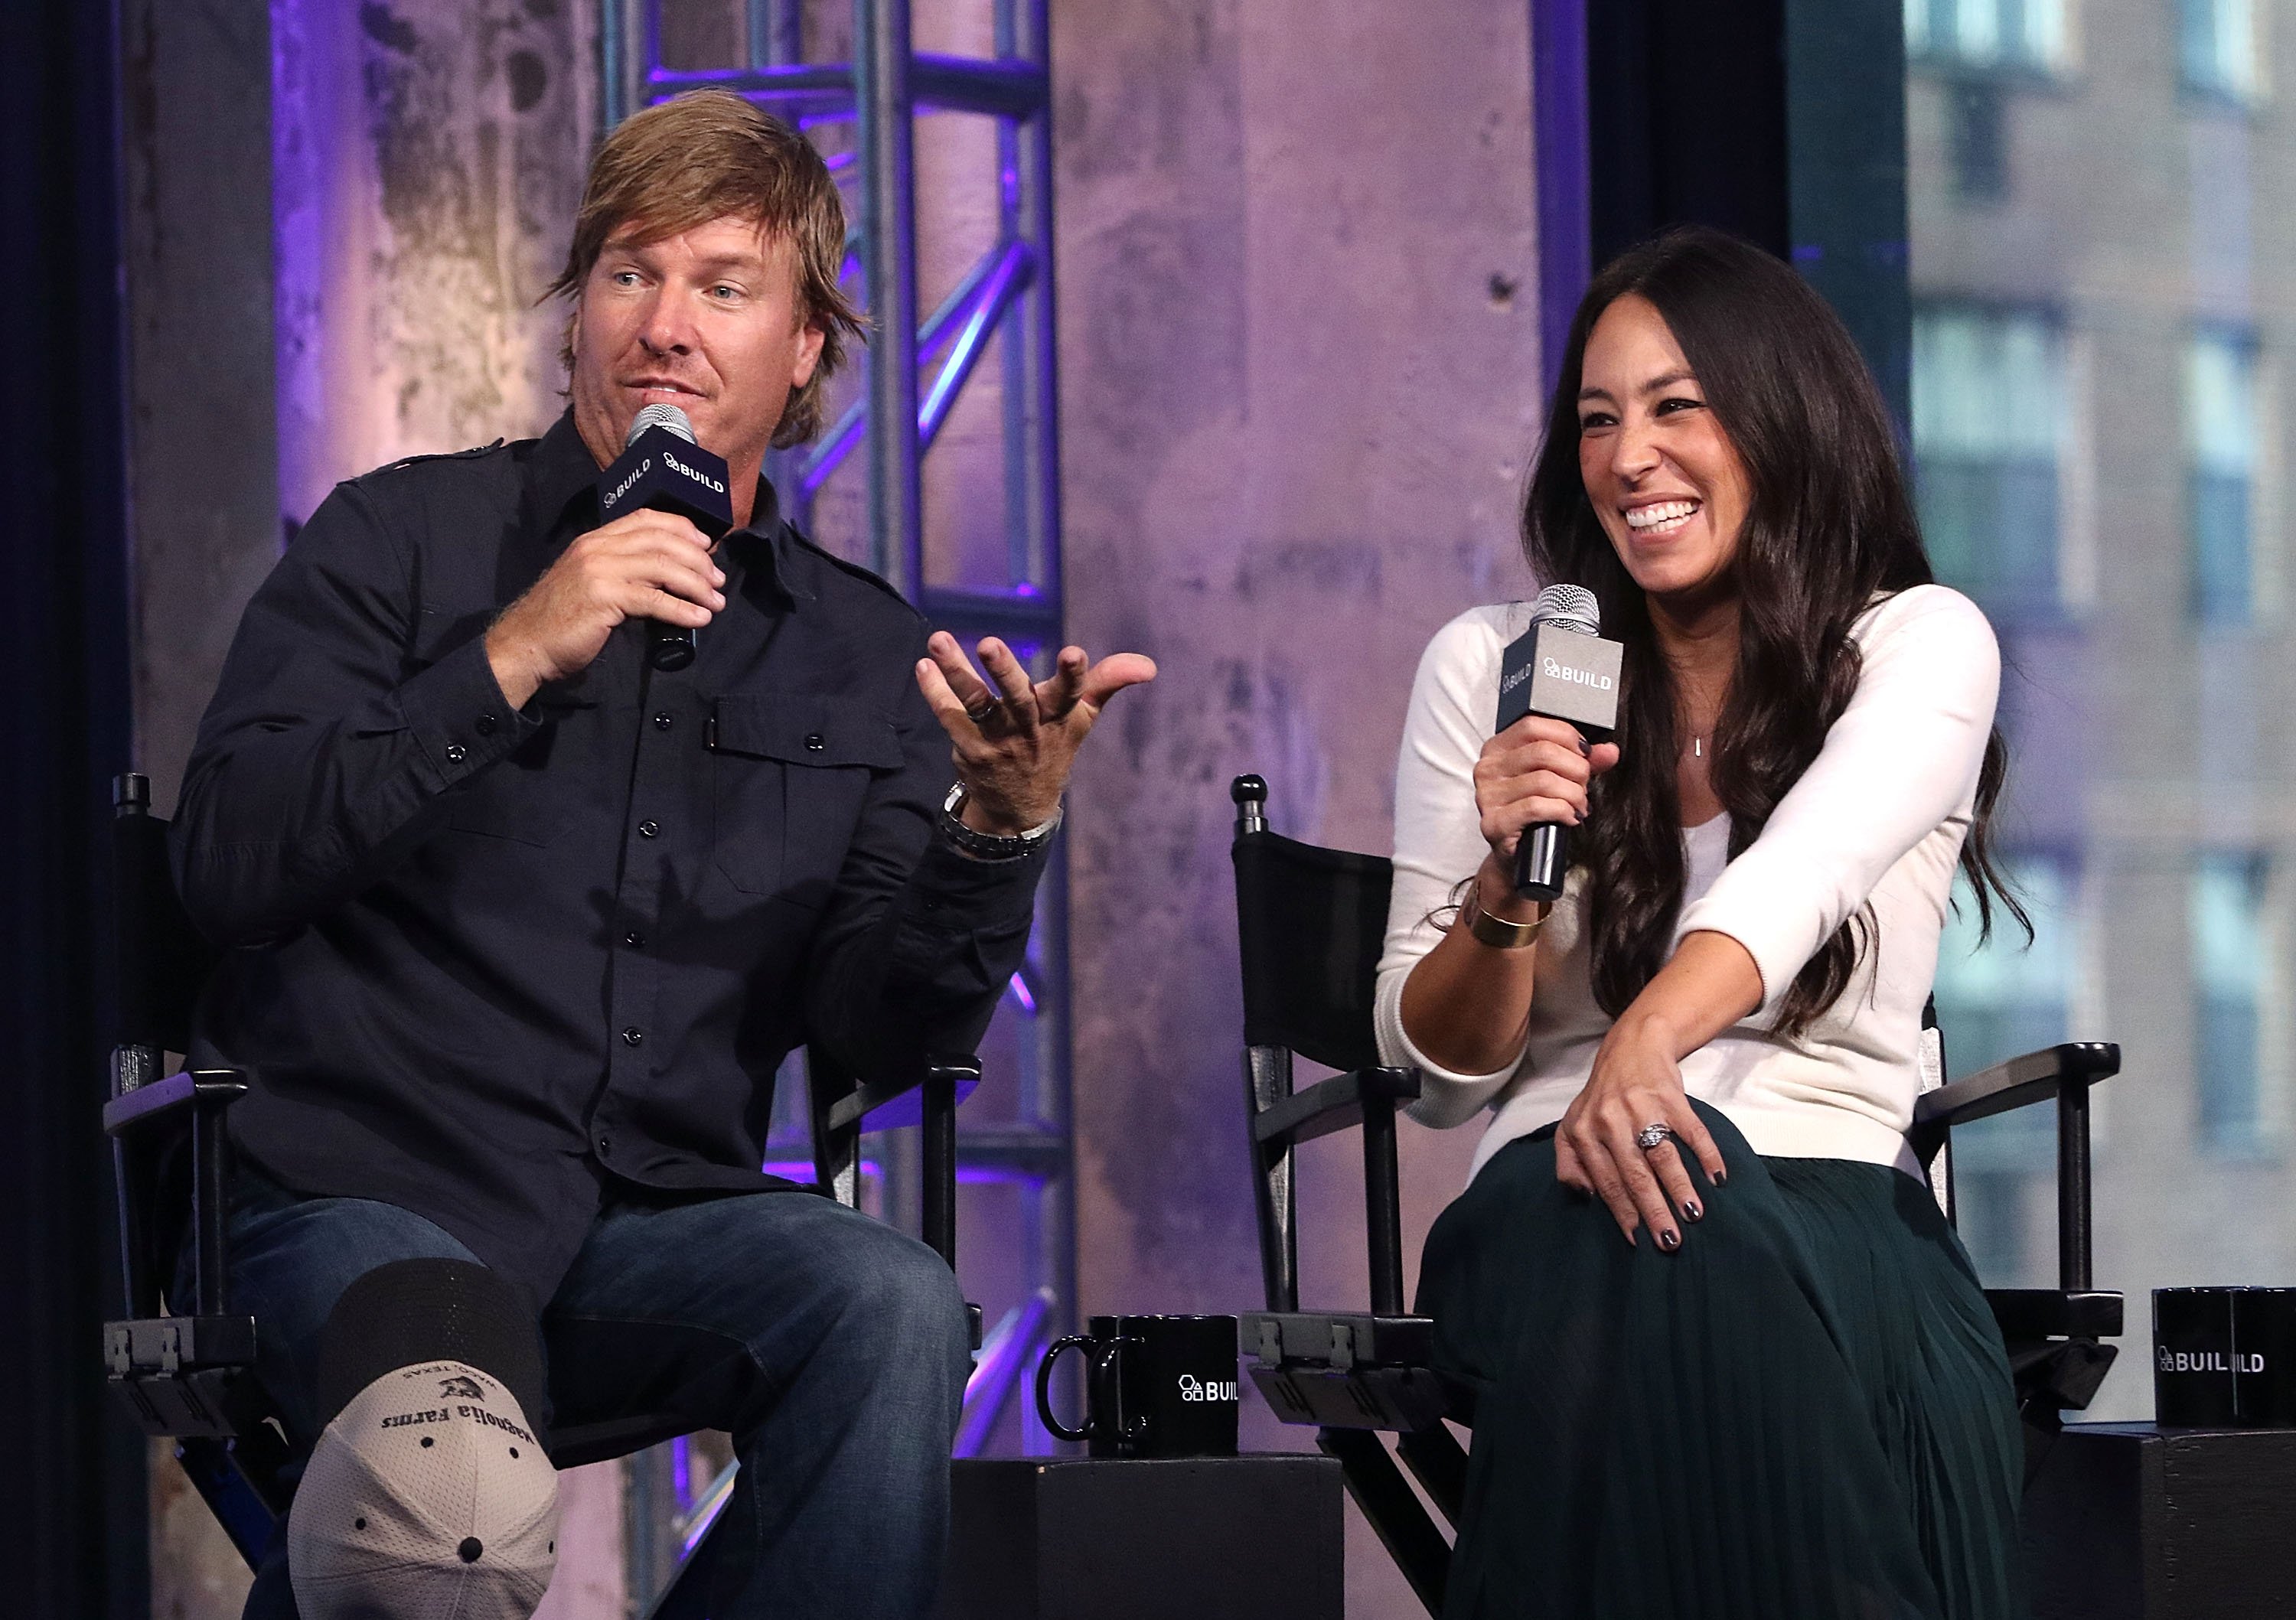 Chip and Joanna Gaines during a TV interview